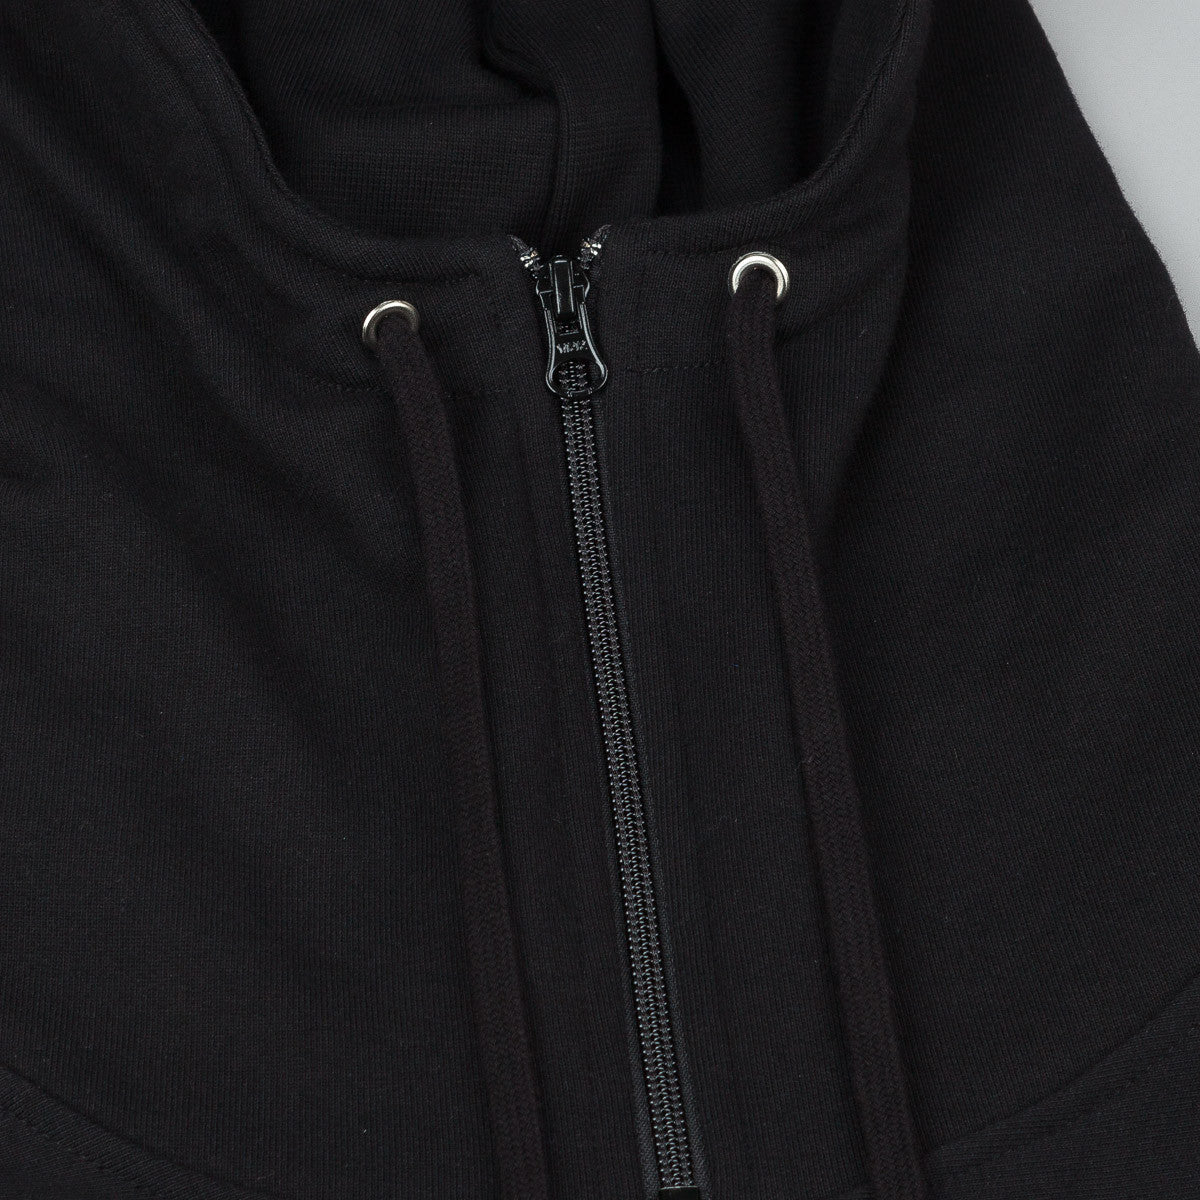 Raised By Wolves x Trashhand Half Zip Hooded Sweatshirt - Black